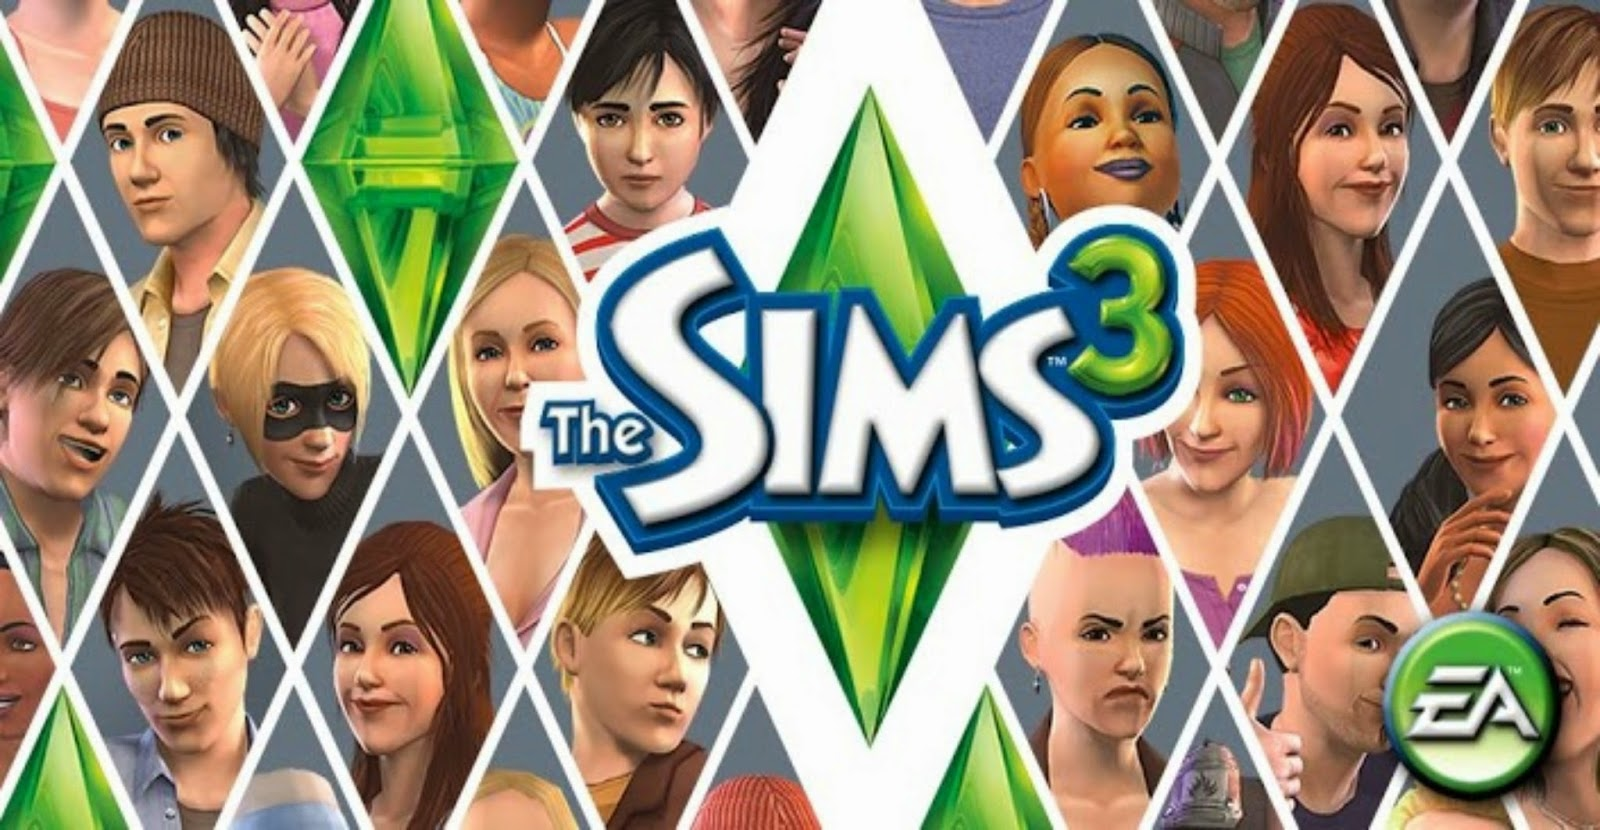 The Sims 3 Apk Data Android Games